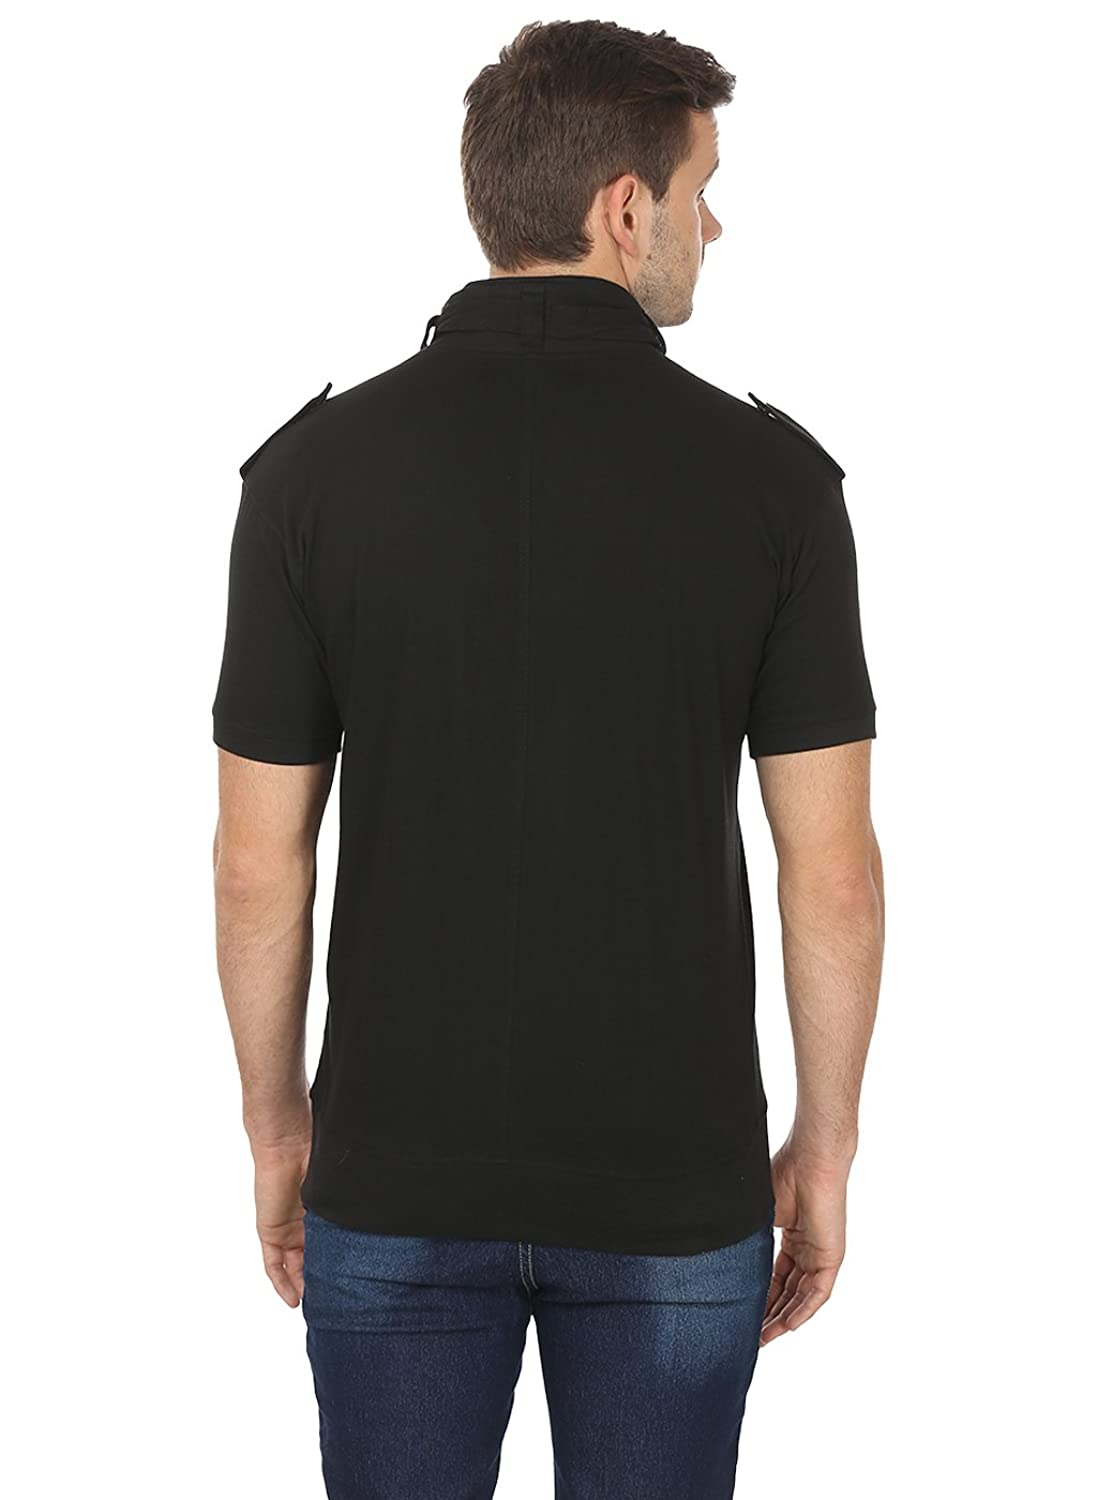 Black t shirt collar - Black Collection Stylish Flap Collar T Shirt Amazon In Clothing Accessories